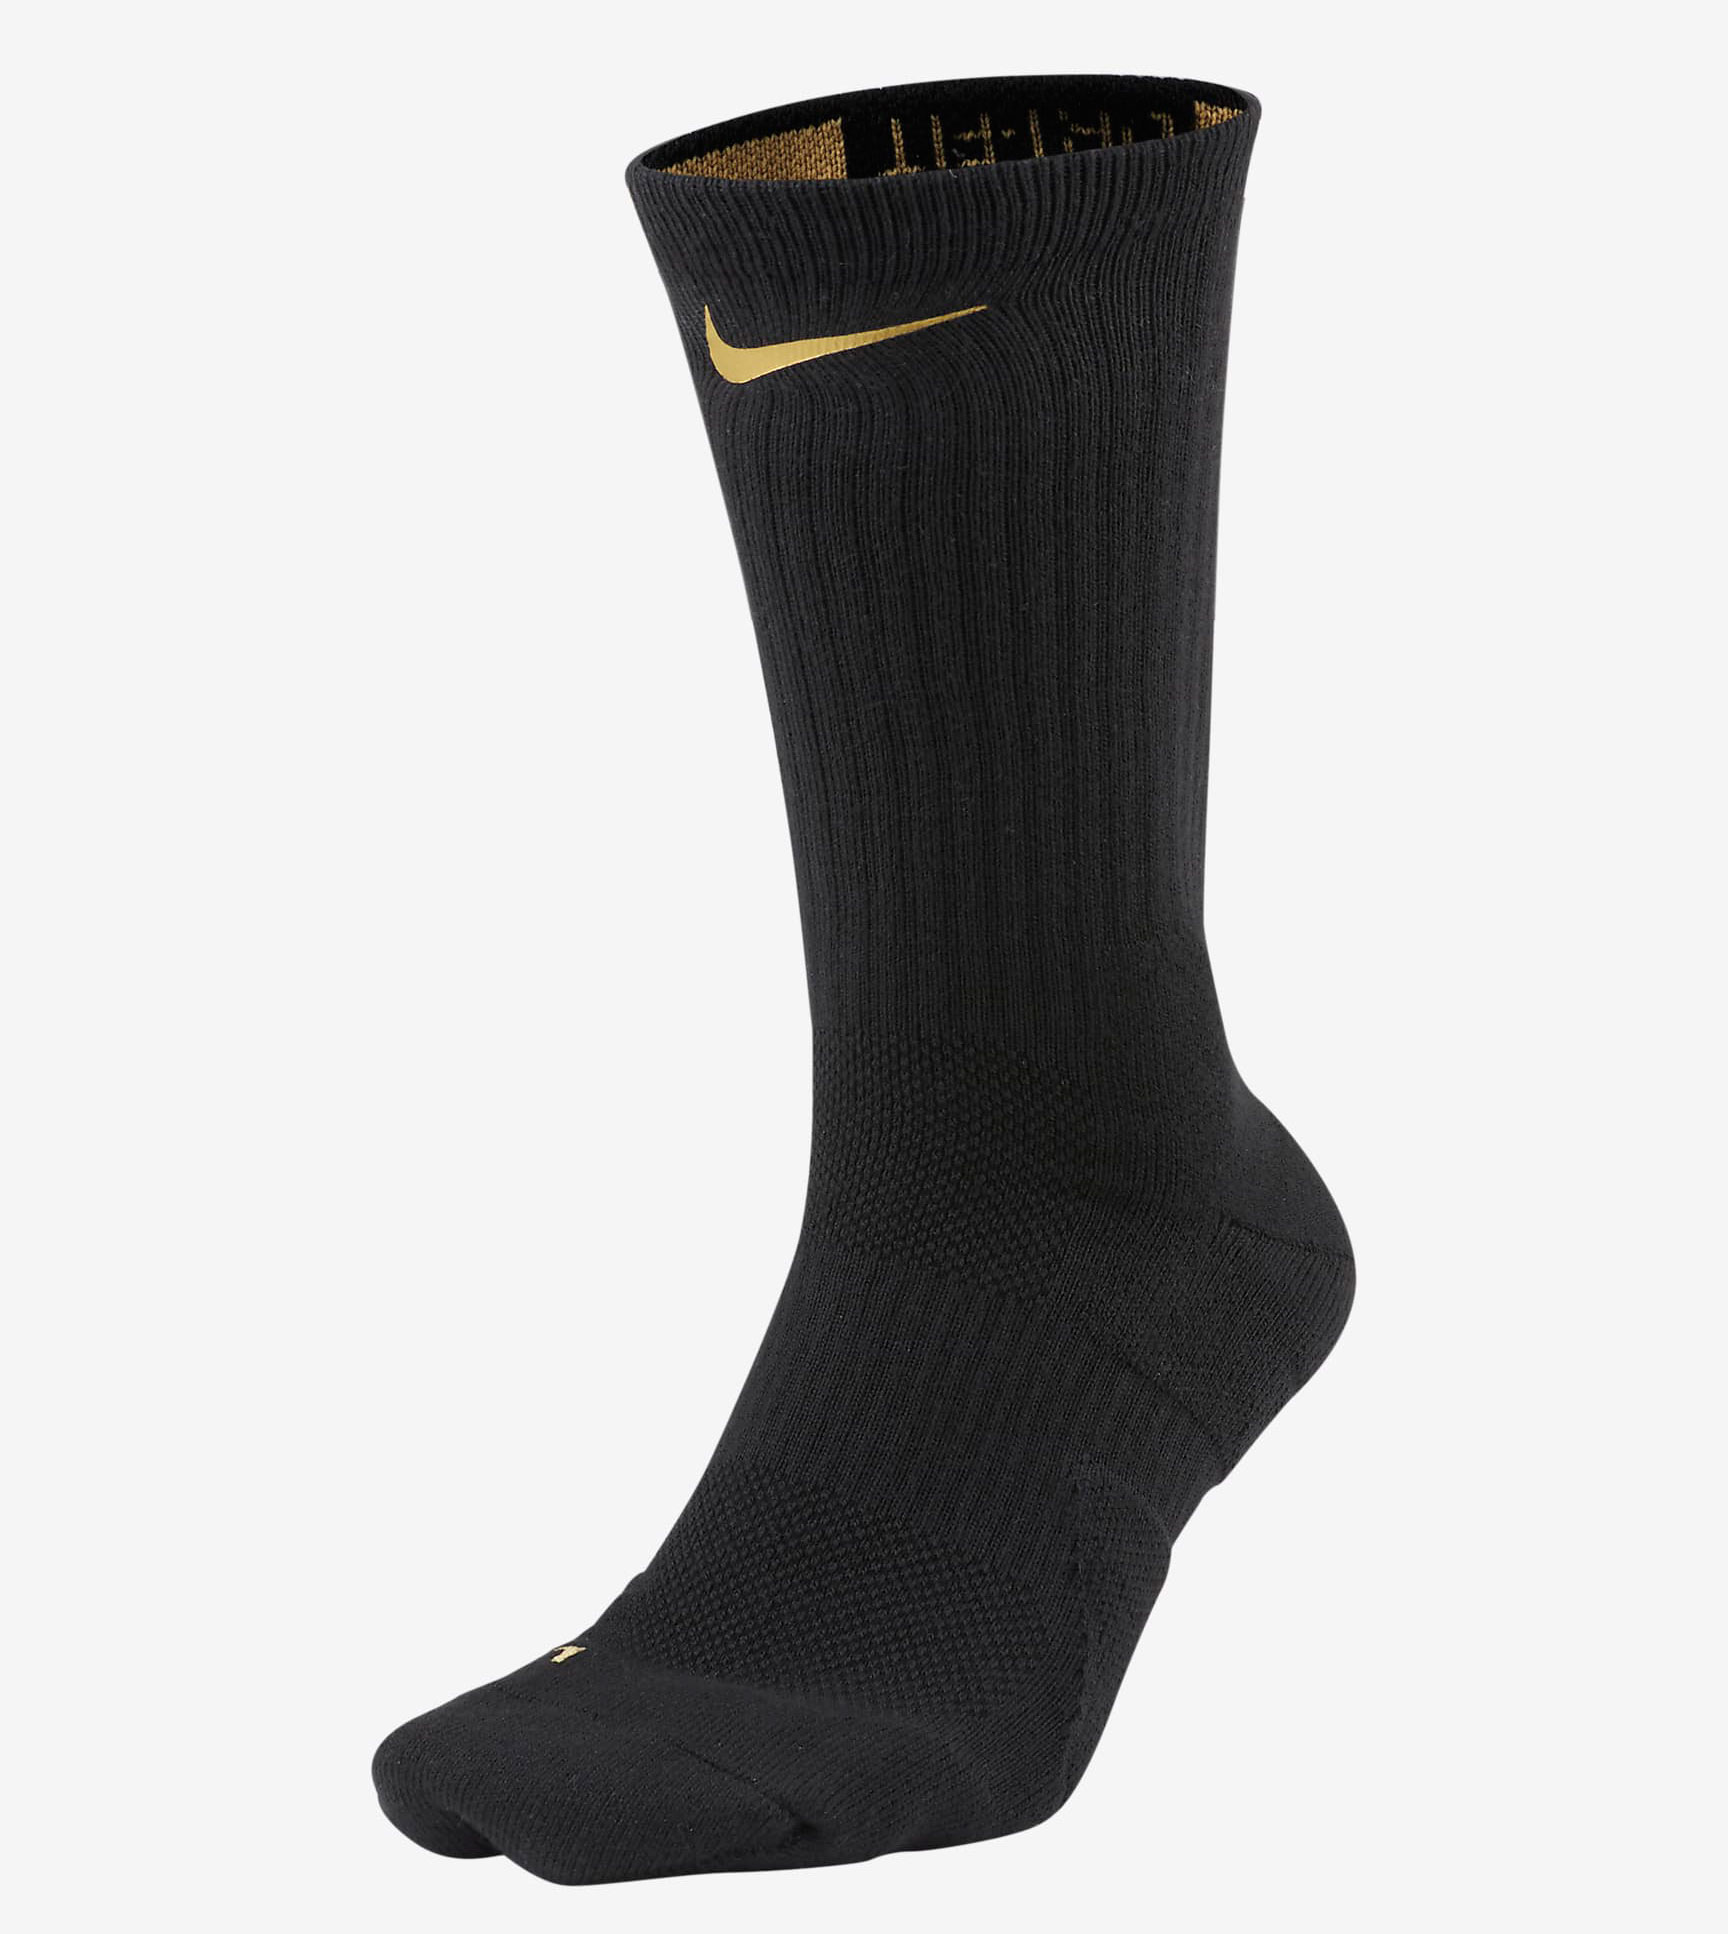 nike-elite-crew-basketball-socks-black-gold-1